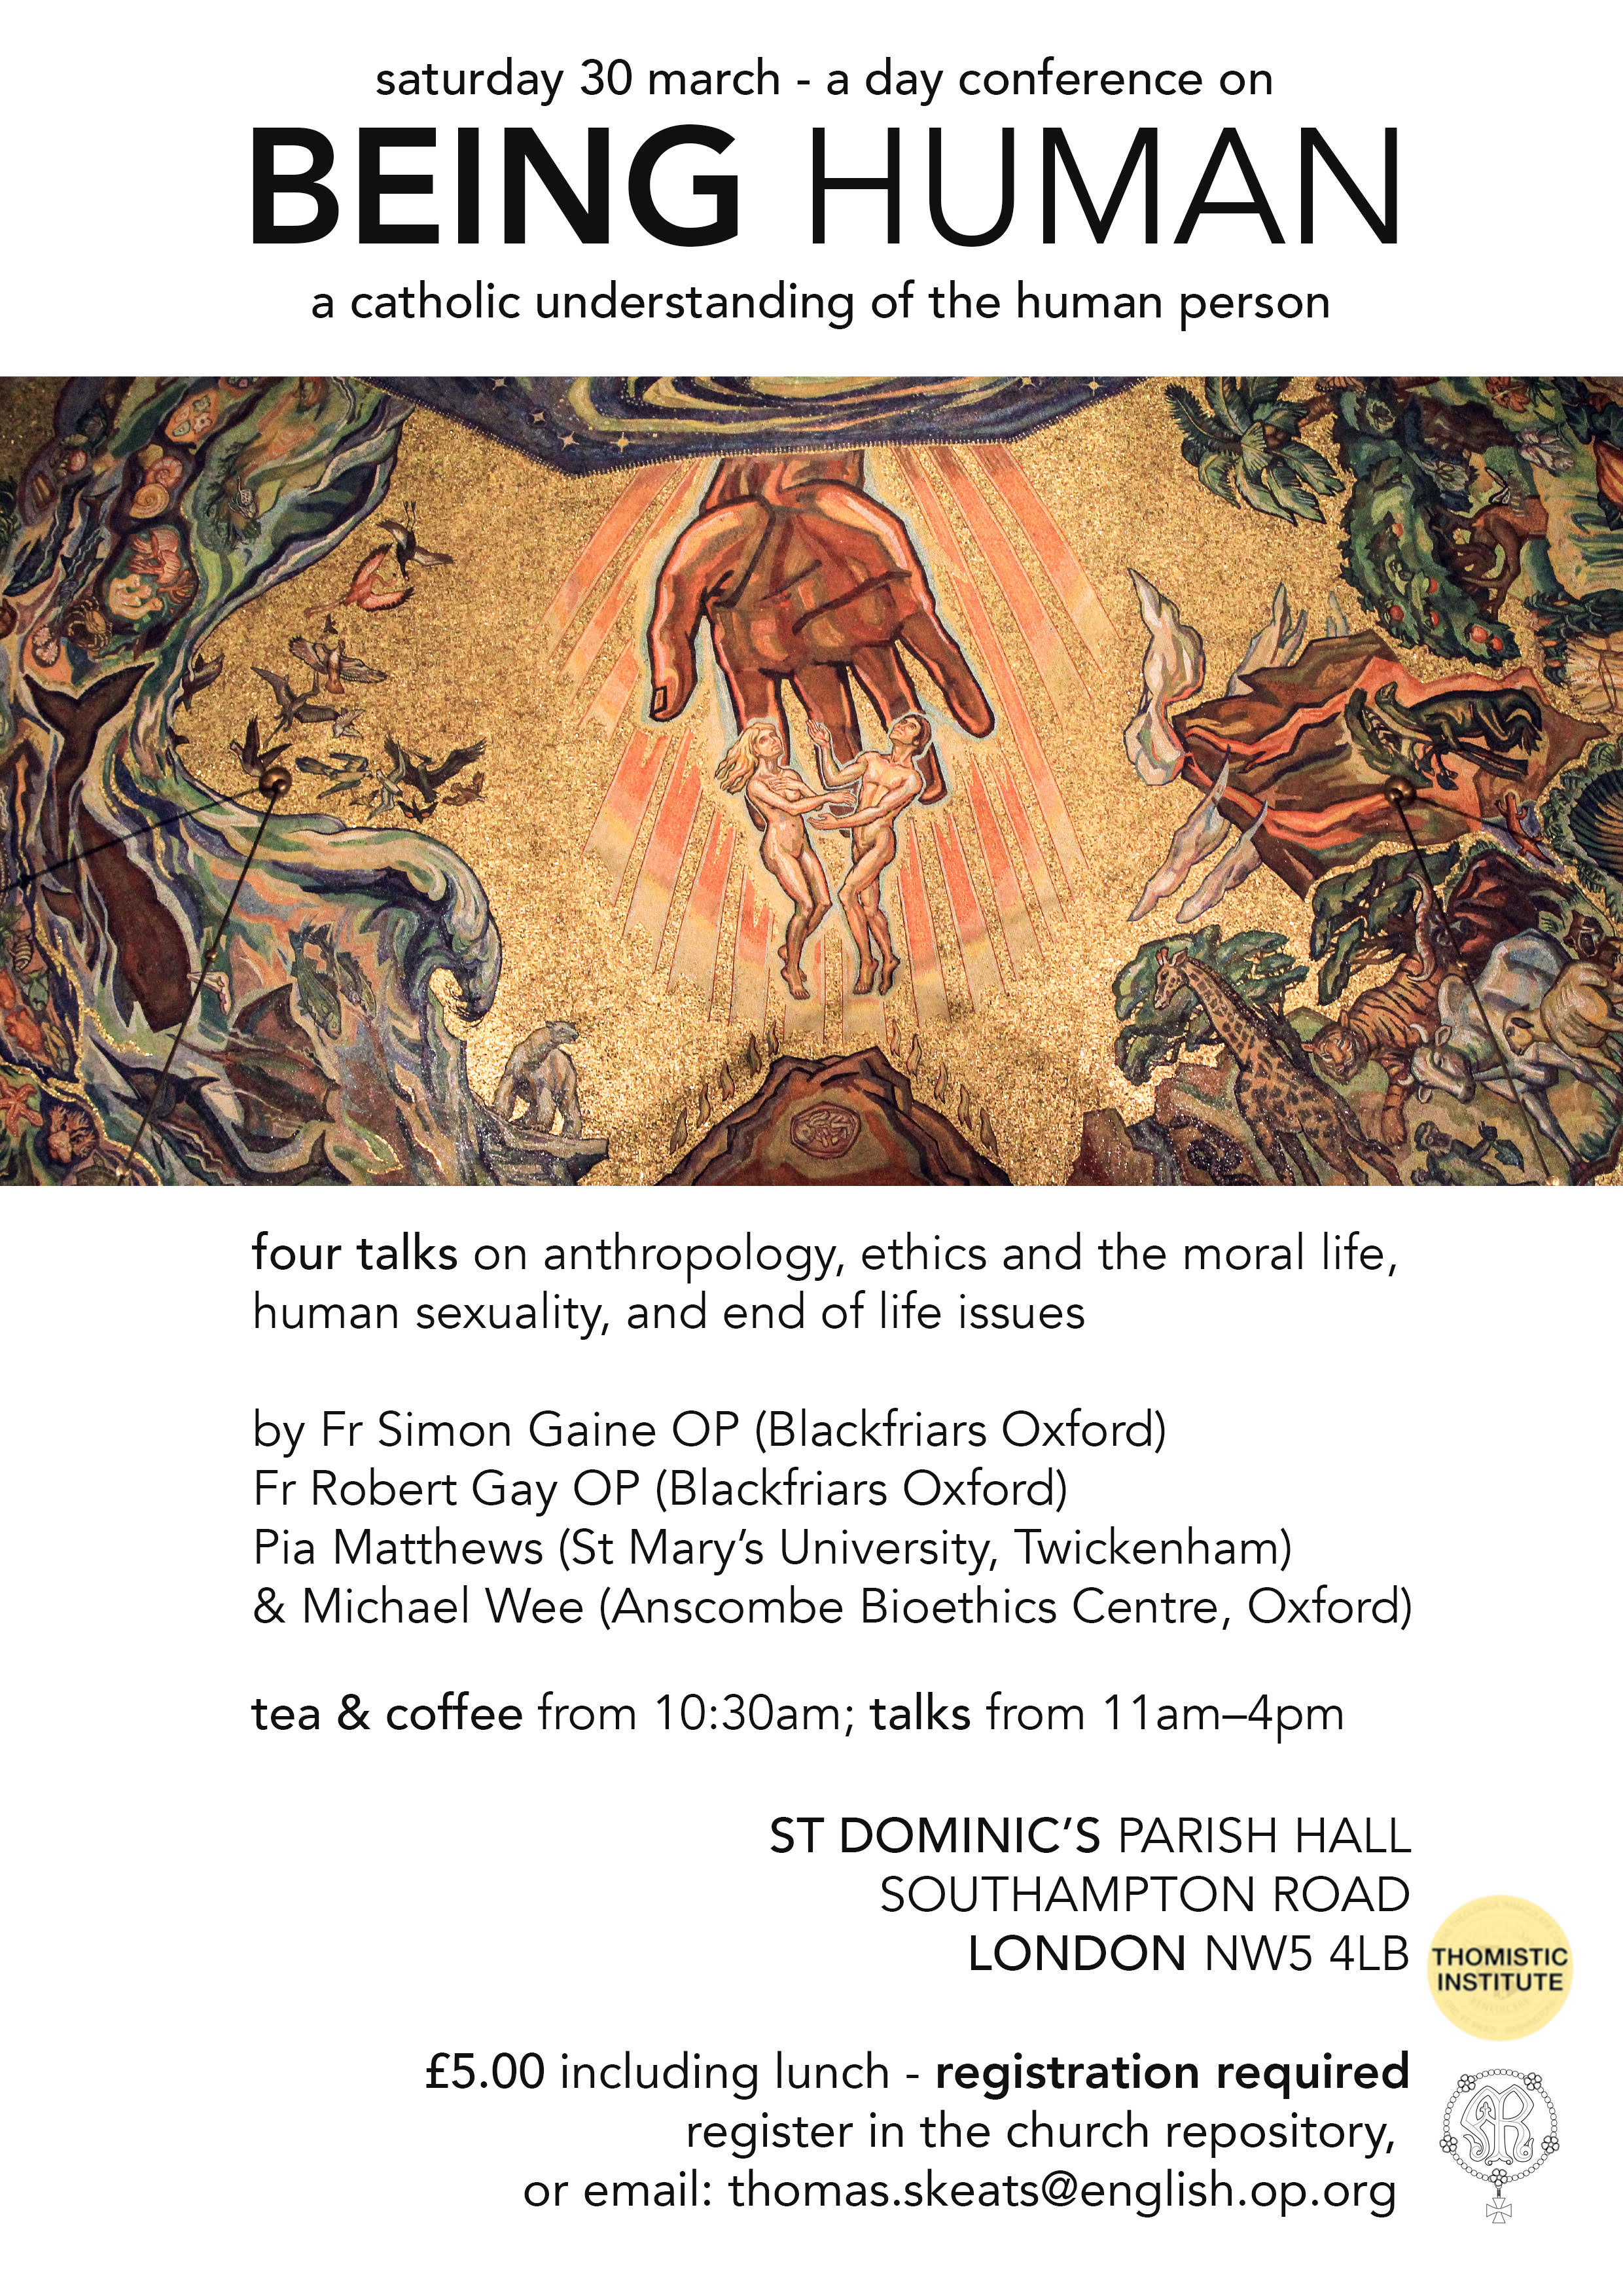 3.30.19 Conference Poster London Young Adults.jpg